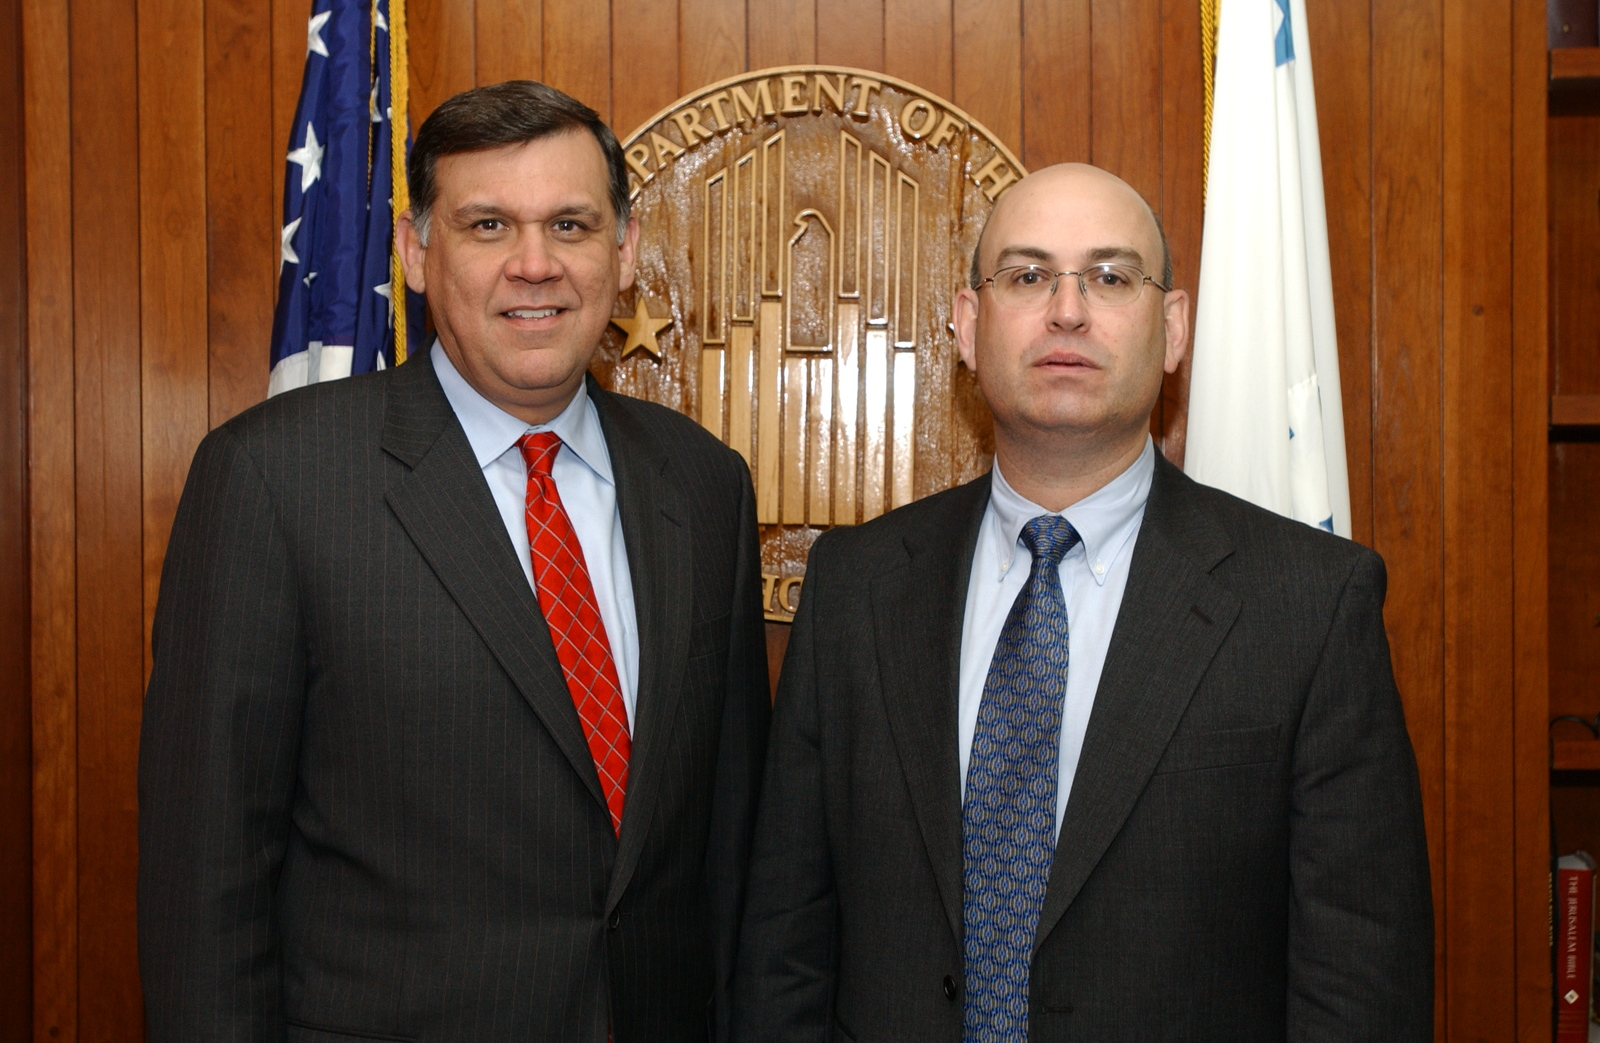 Secretary Mel Martinez with Colonel Emilio Gonzales